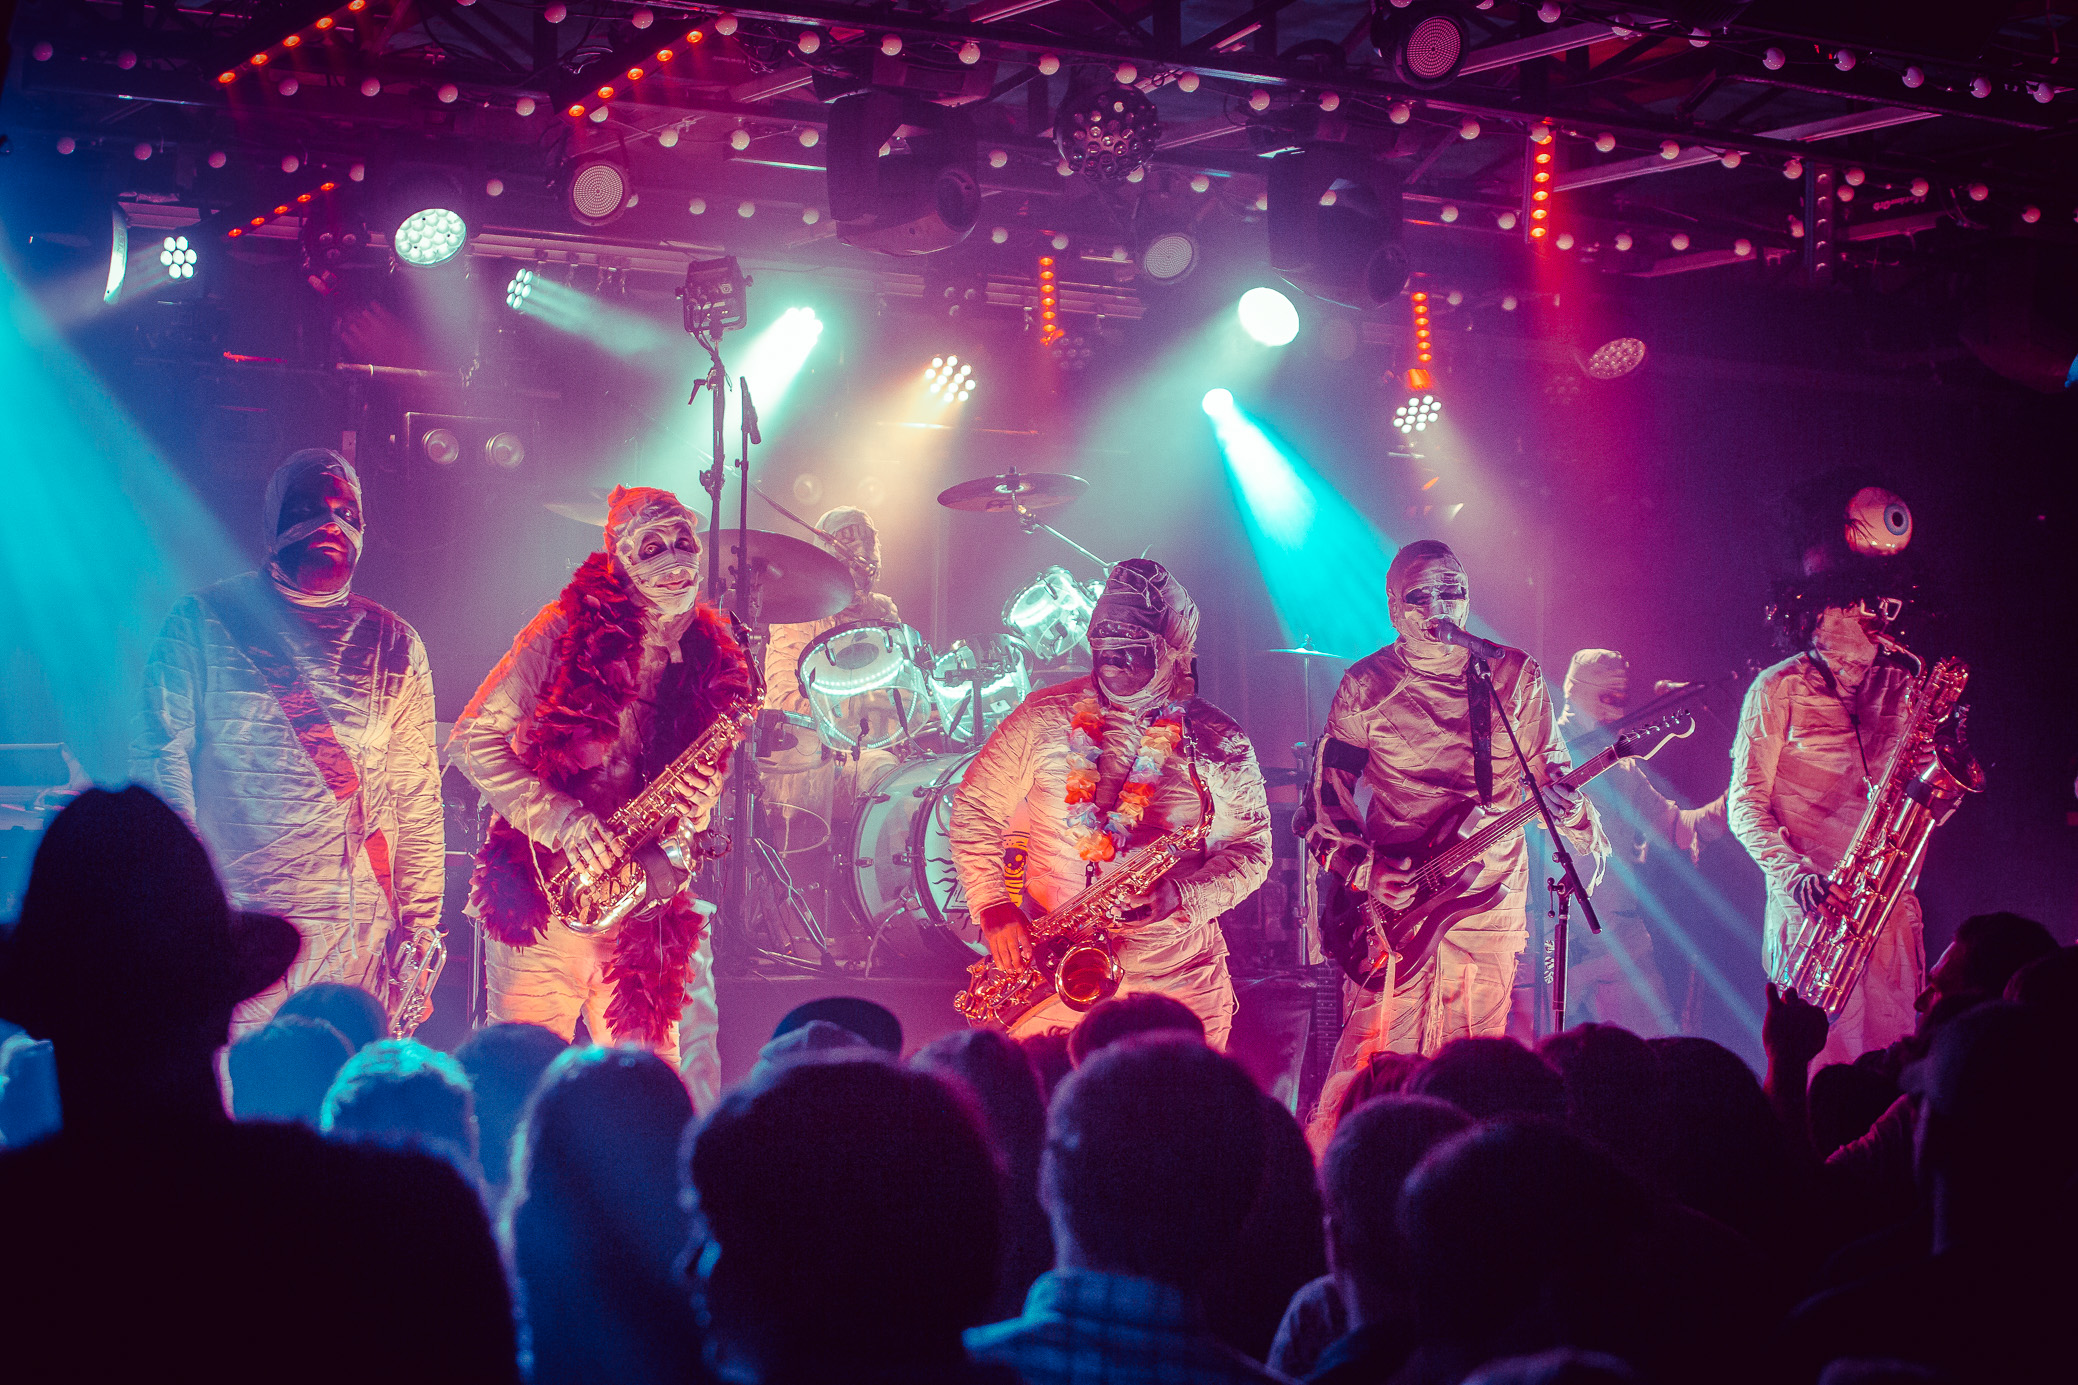 Here Come The Mummies perform in concert at Saturn Birmingham in Birmingham, Alabama on August 9th, 2019. (Photo by David A. Smith/DSmithScenes)